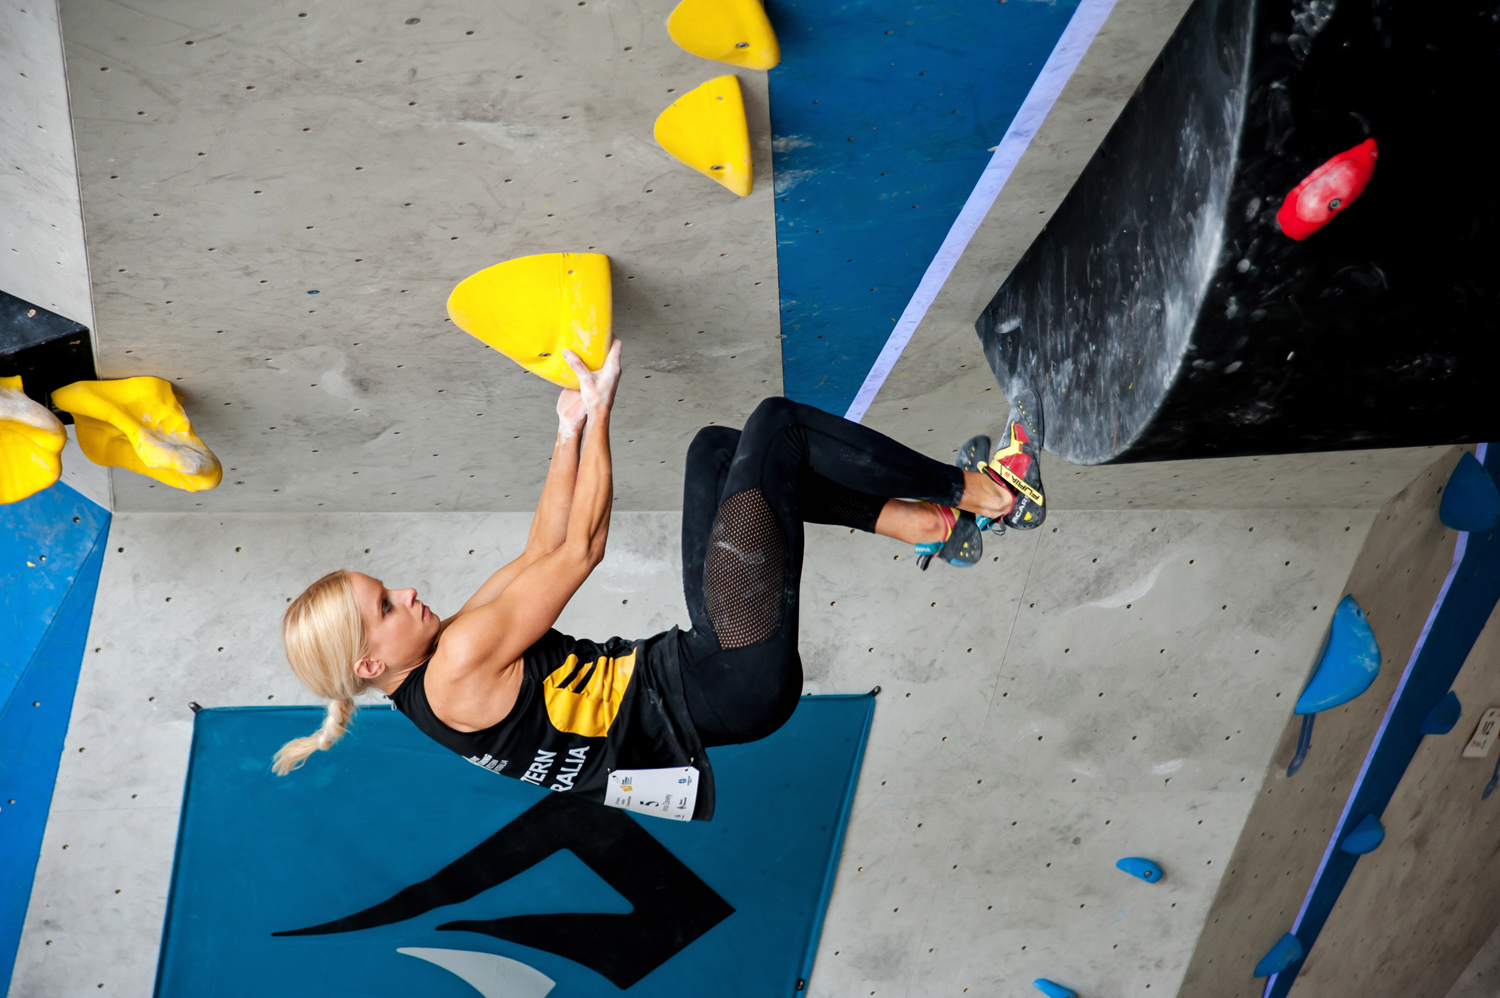 Climbing Rocks Professional Climbing Photography Competition Open Bouldering Championships 2019 (1) Anna Davey